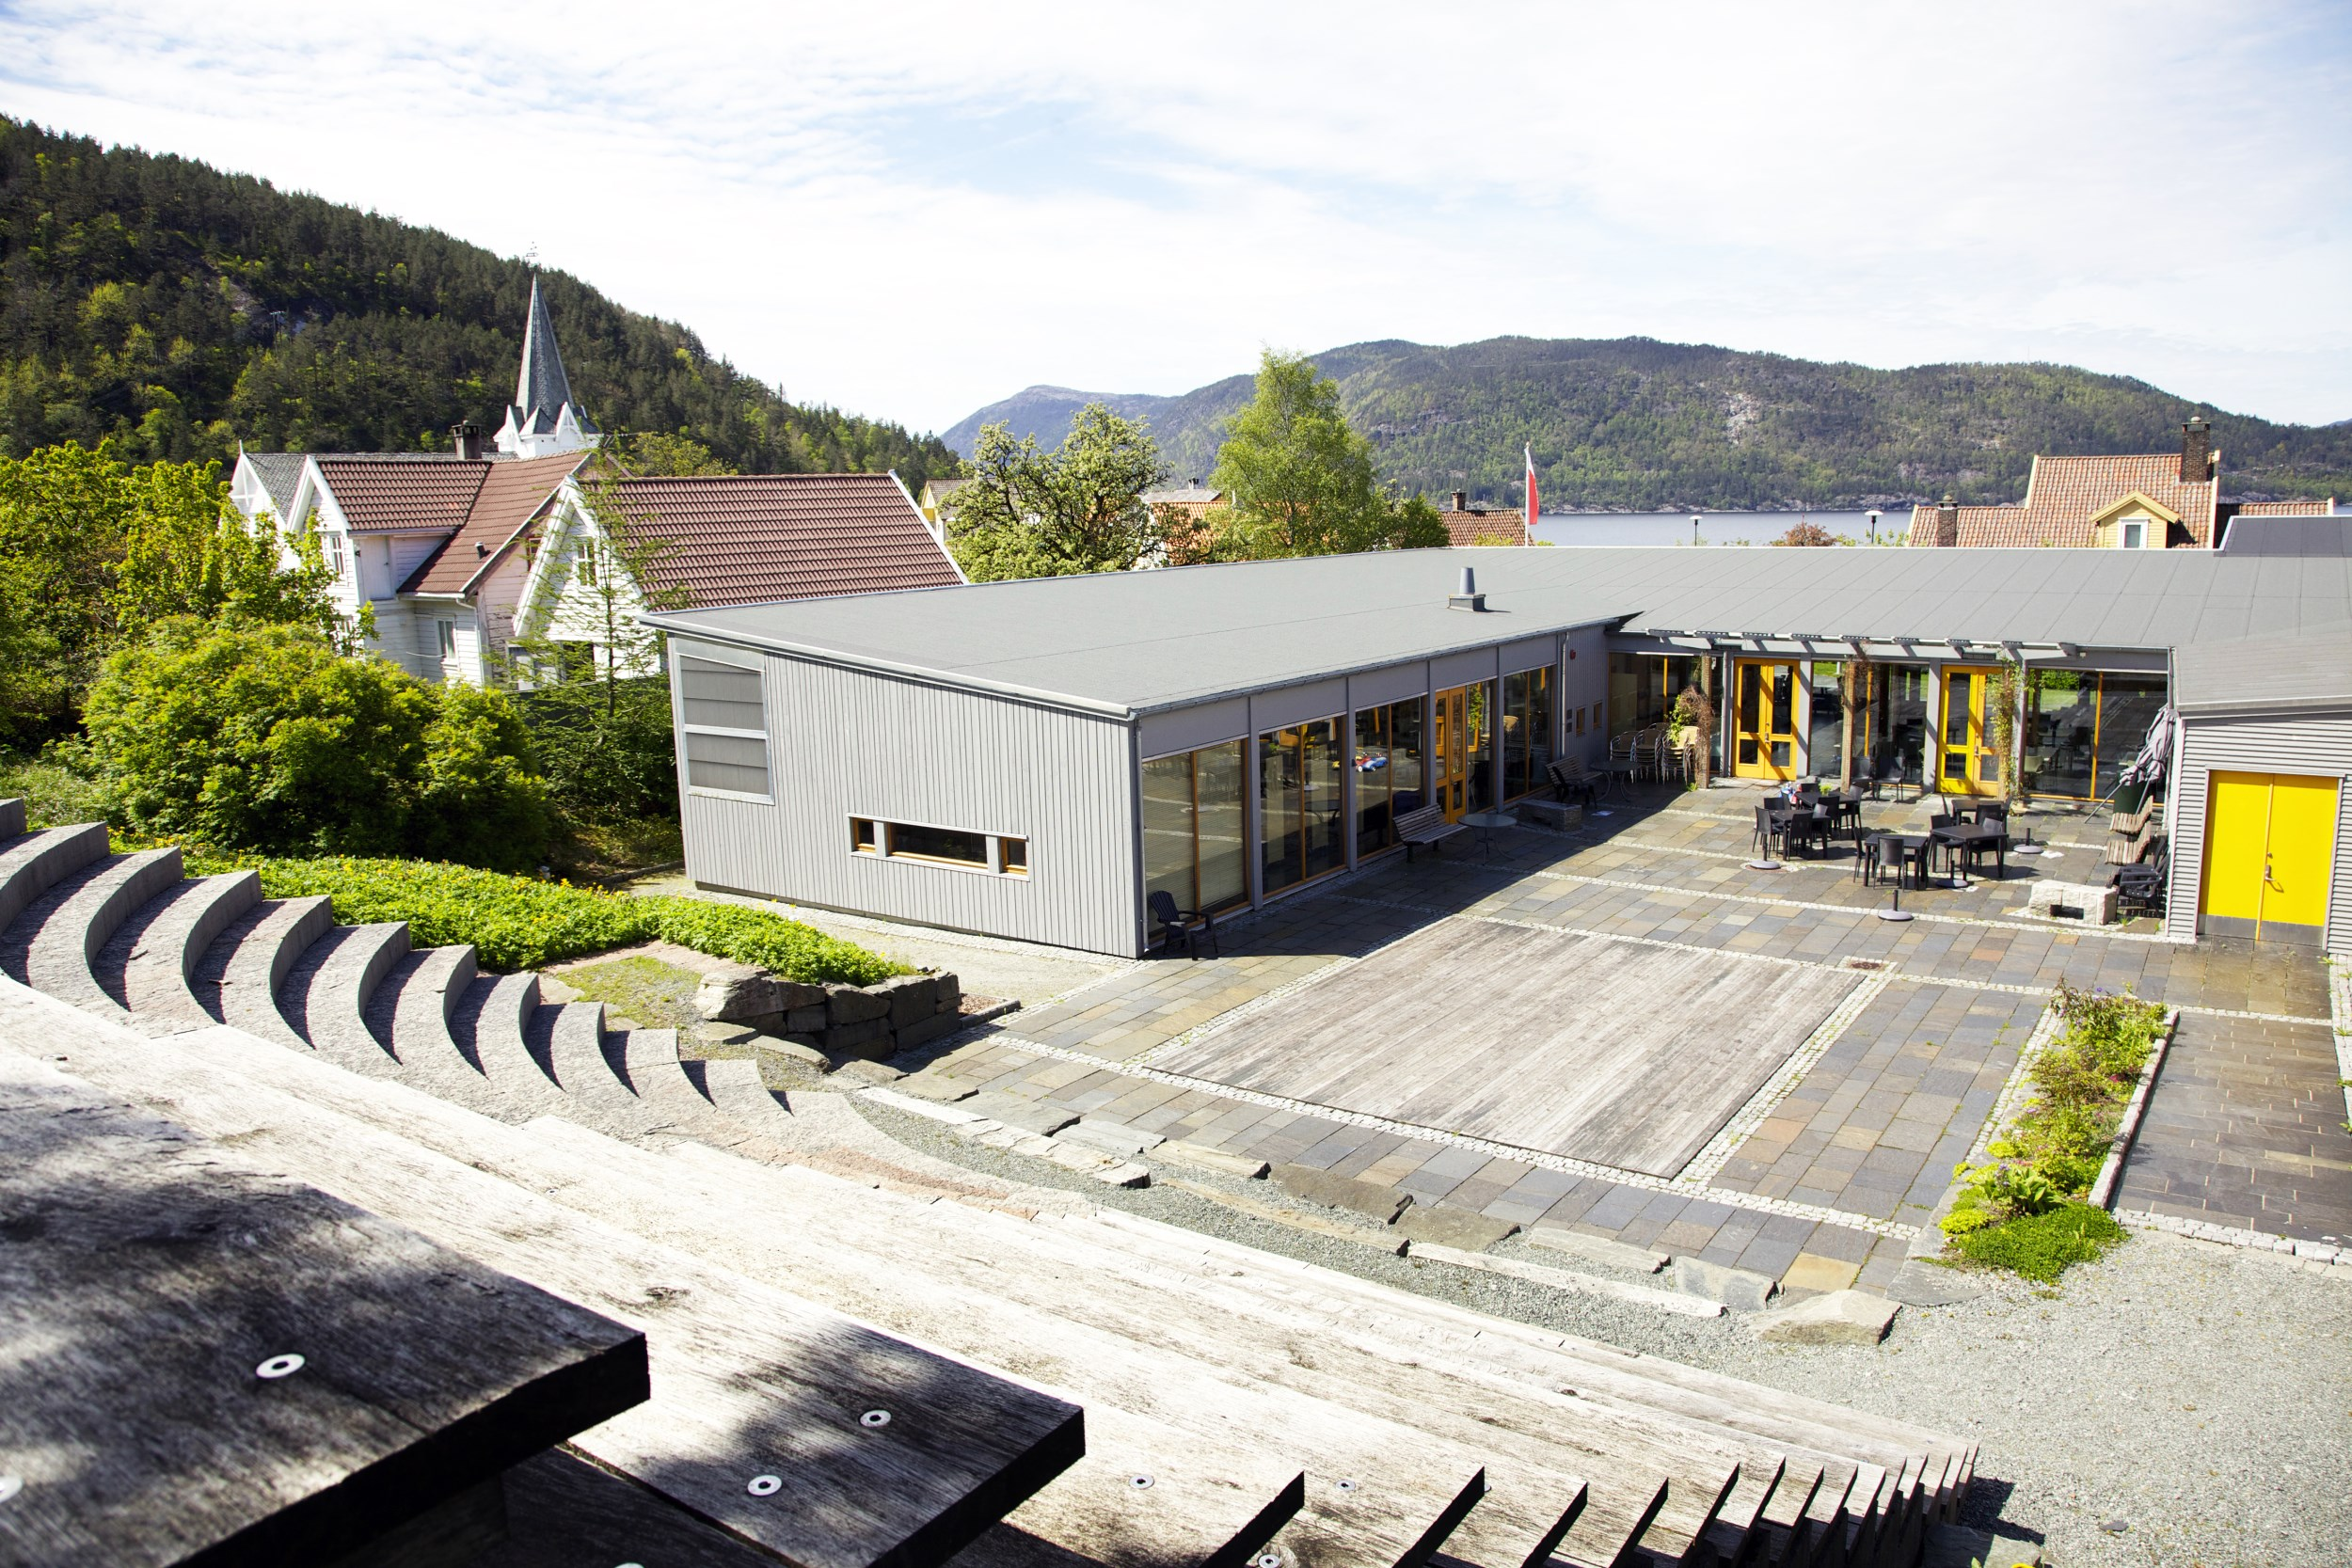 Picture of Suldal cultural centre